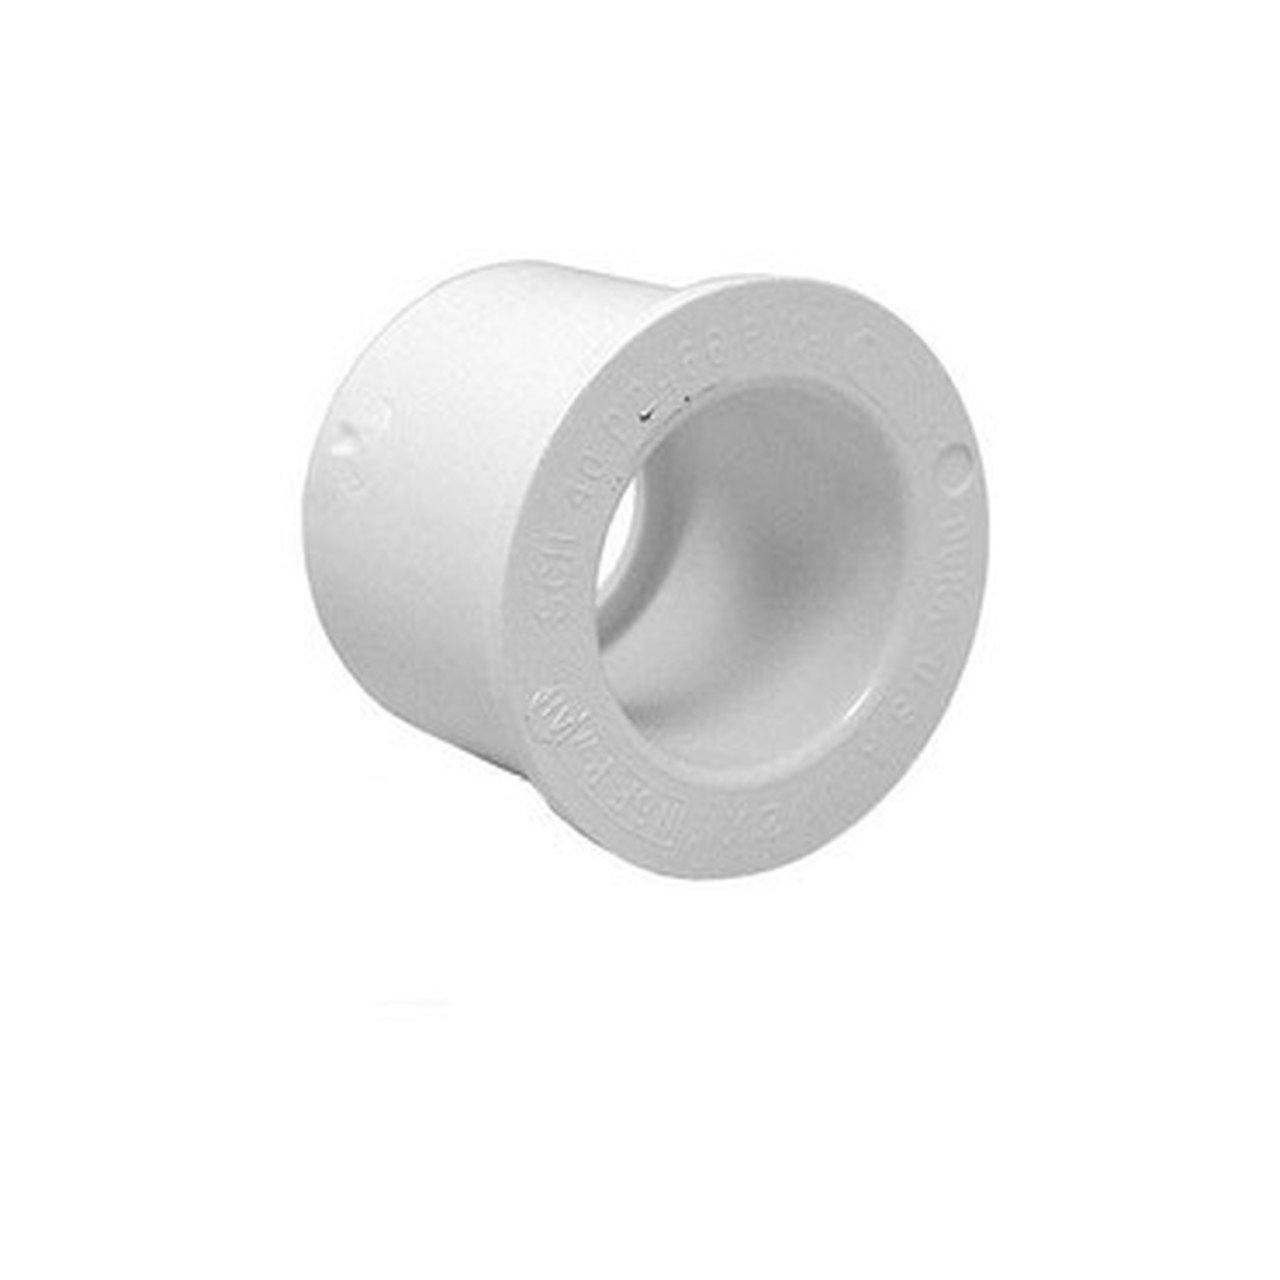 "Dura Plastics Reducing bush Pool Store Canada White PVC Reducer Bushing - 2-1/2"" Spigot x 2"" Slip - Pool Store Canada"